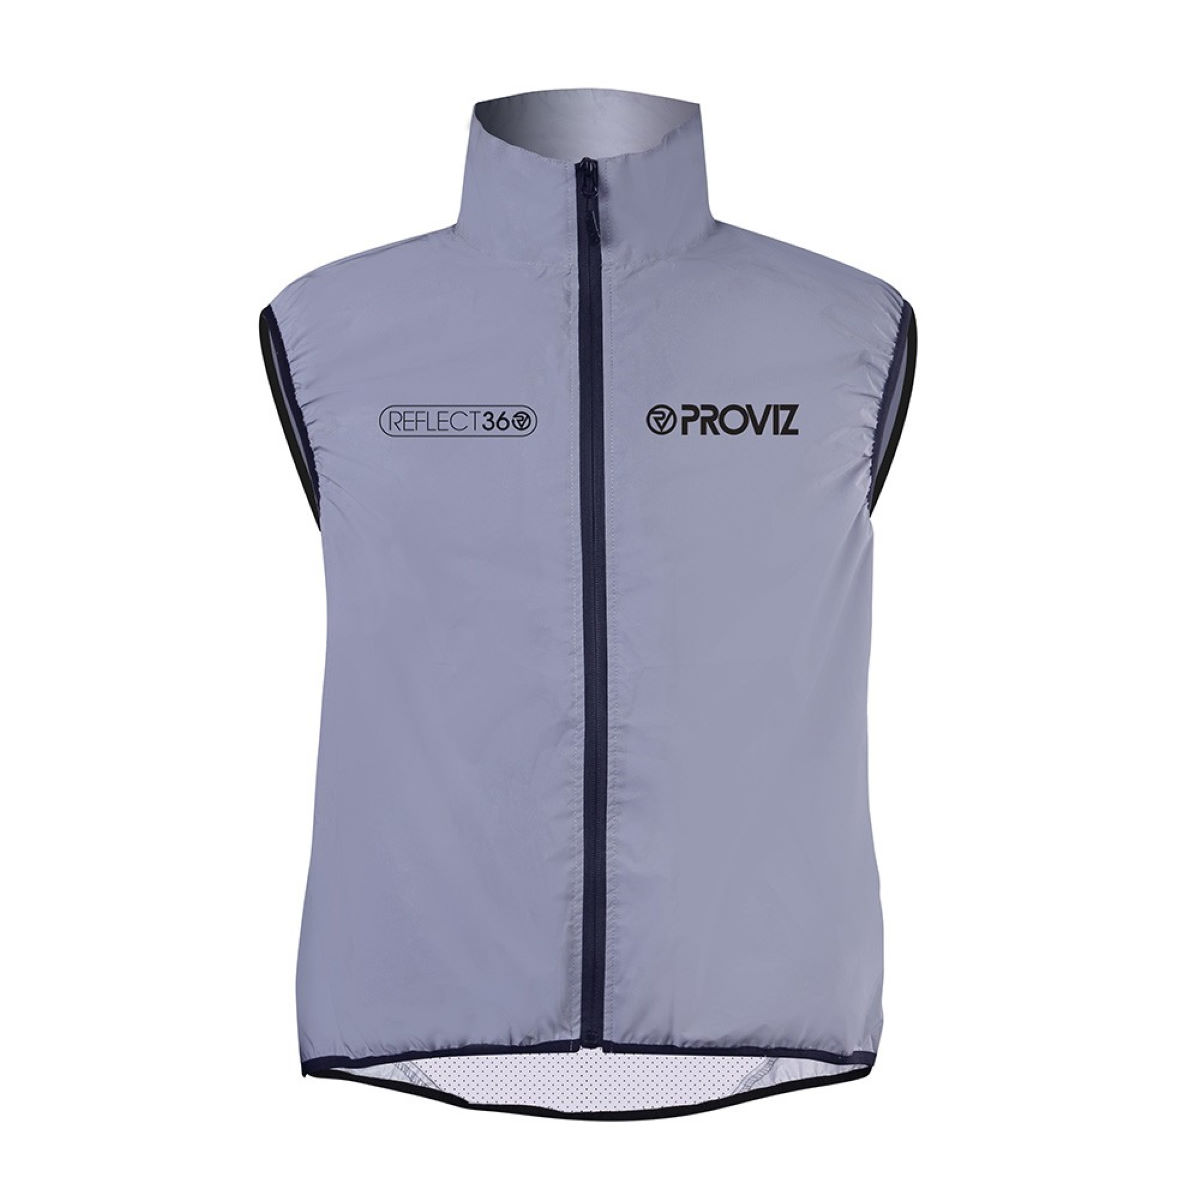 Gilet Proviz Reflect 360 (sans manches) - Medium Reflective